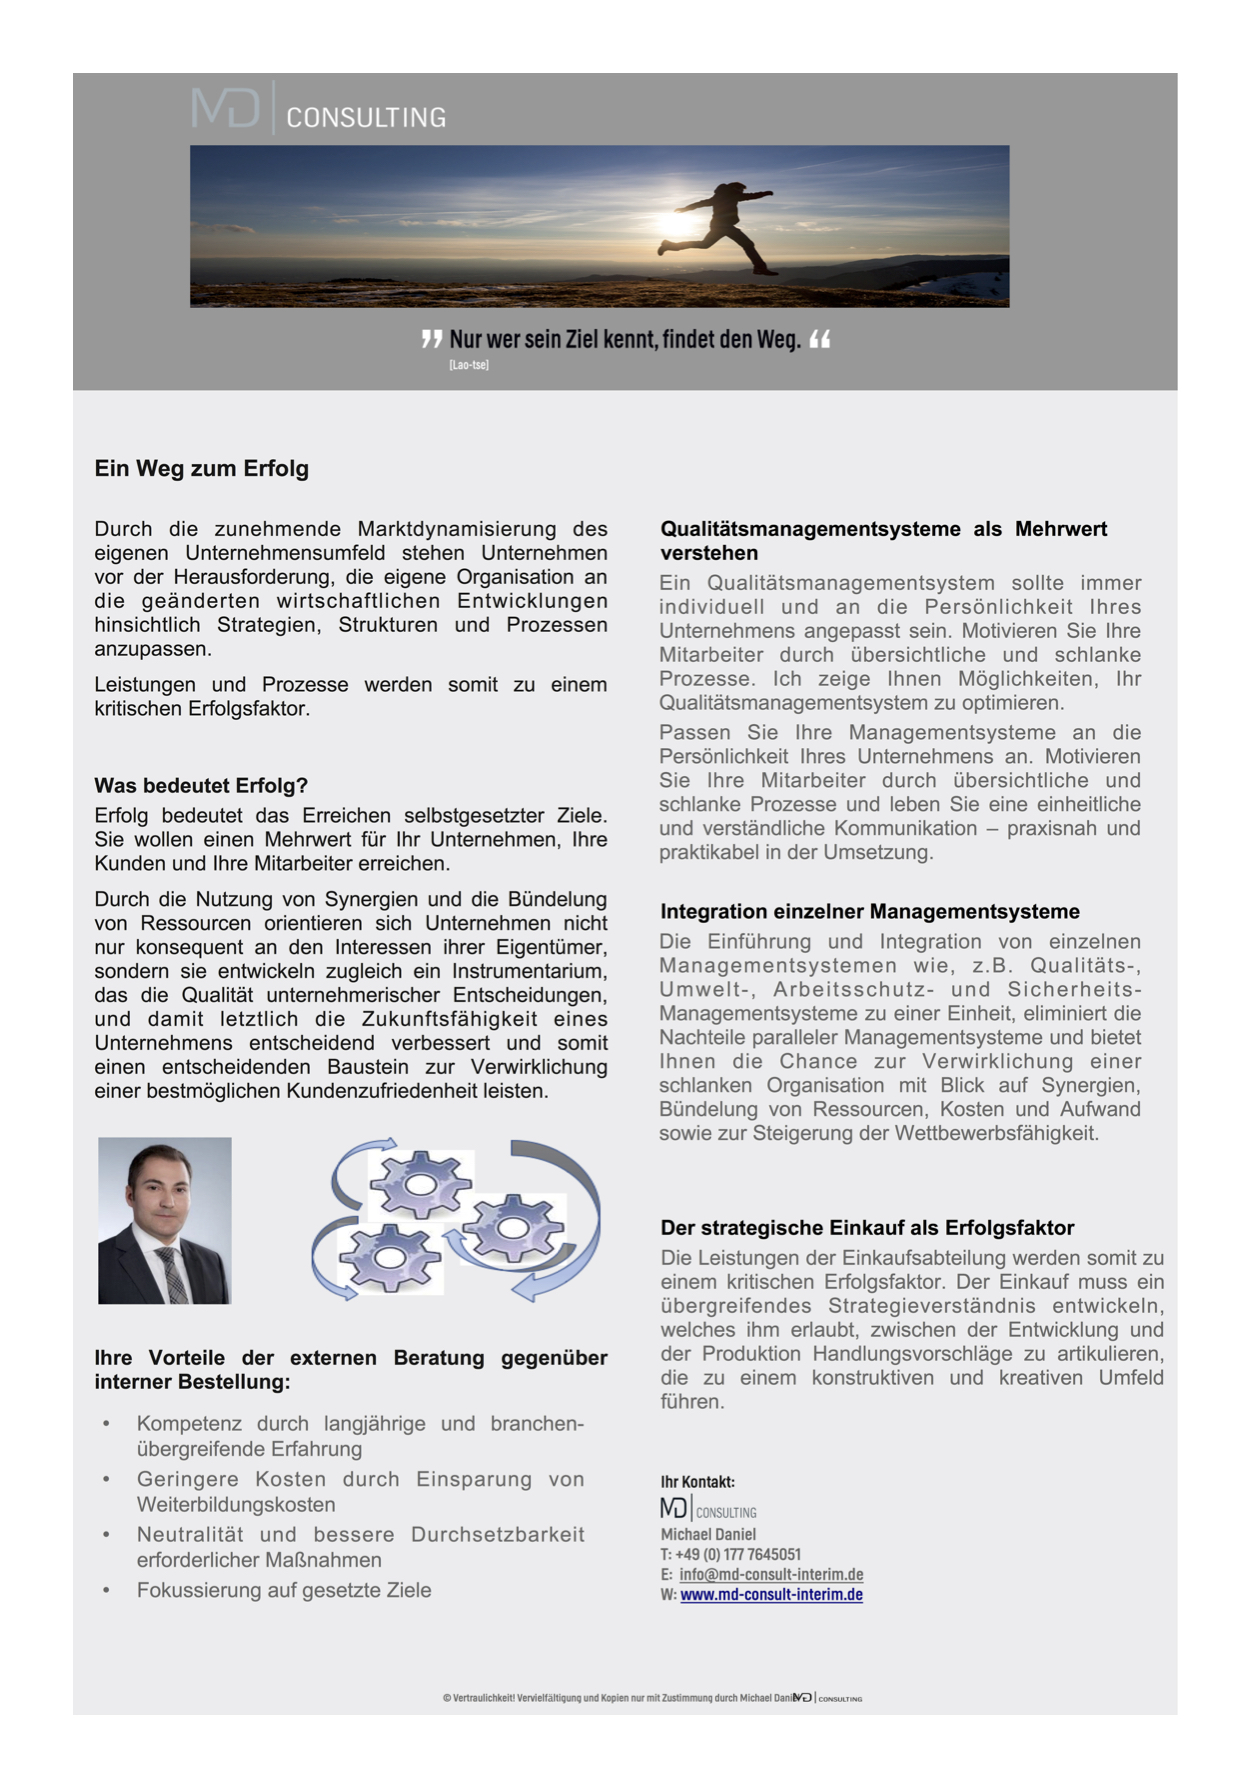 onepager-md-consulting4